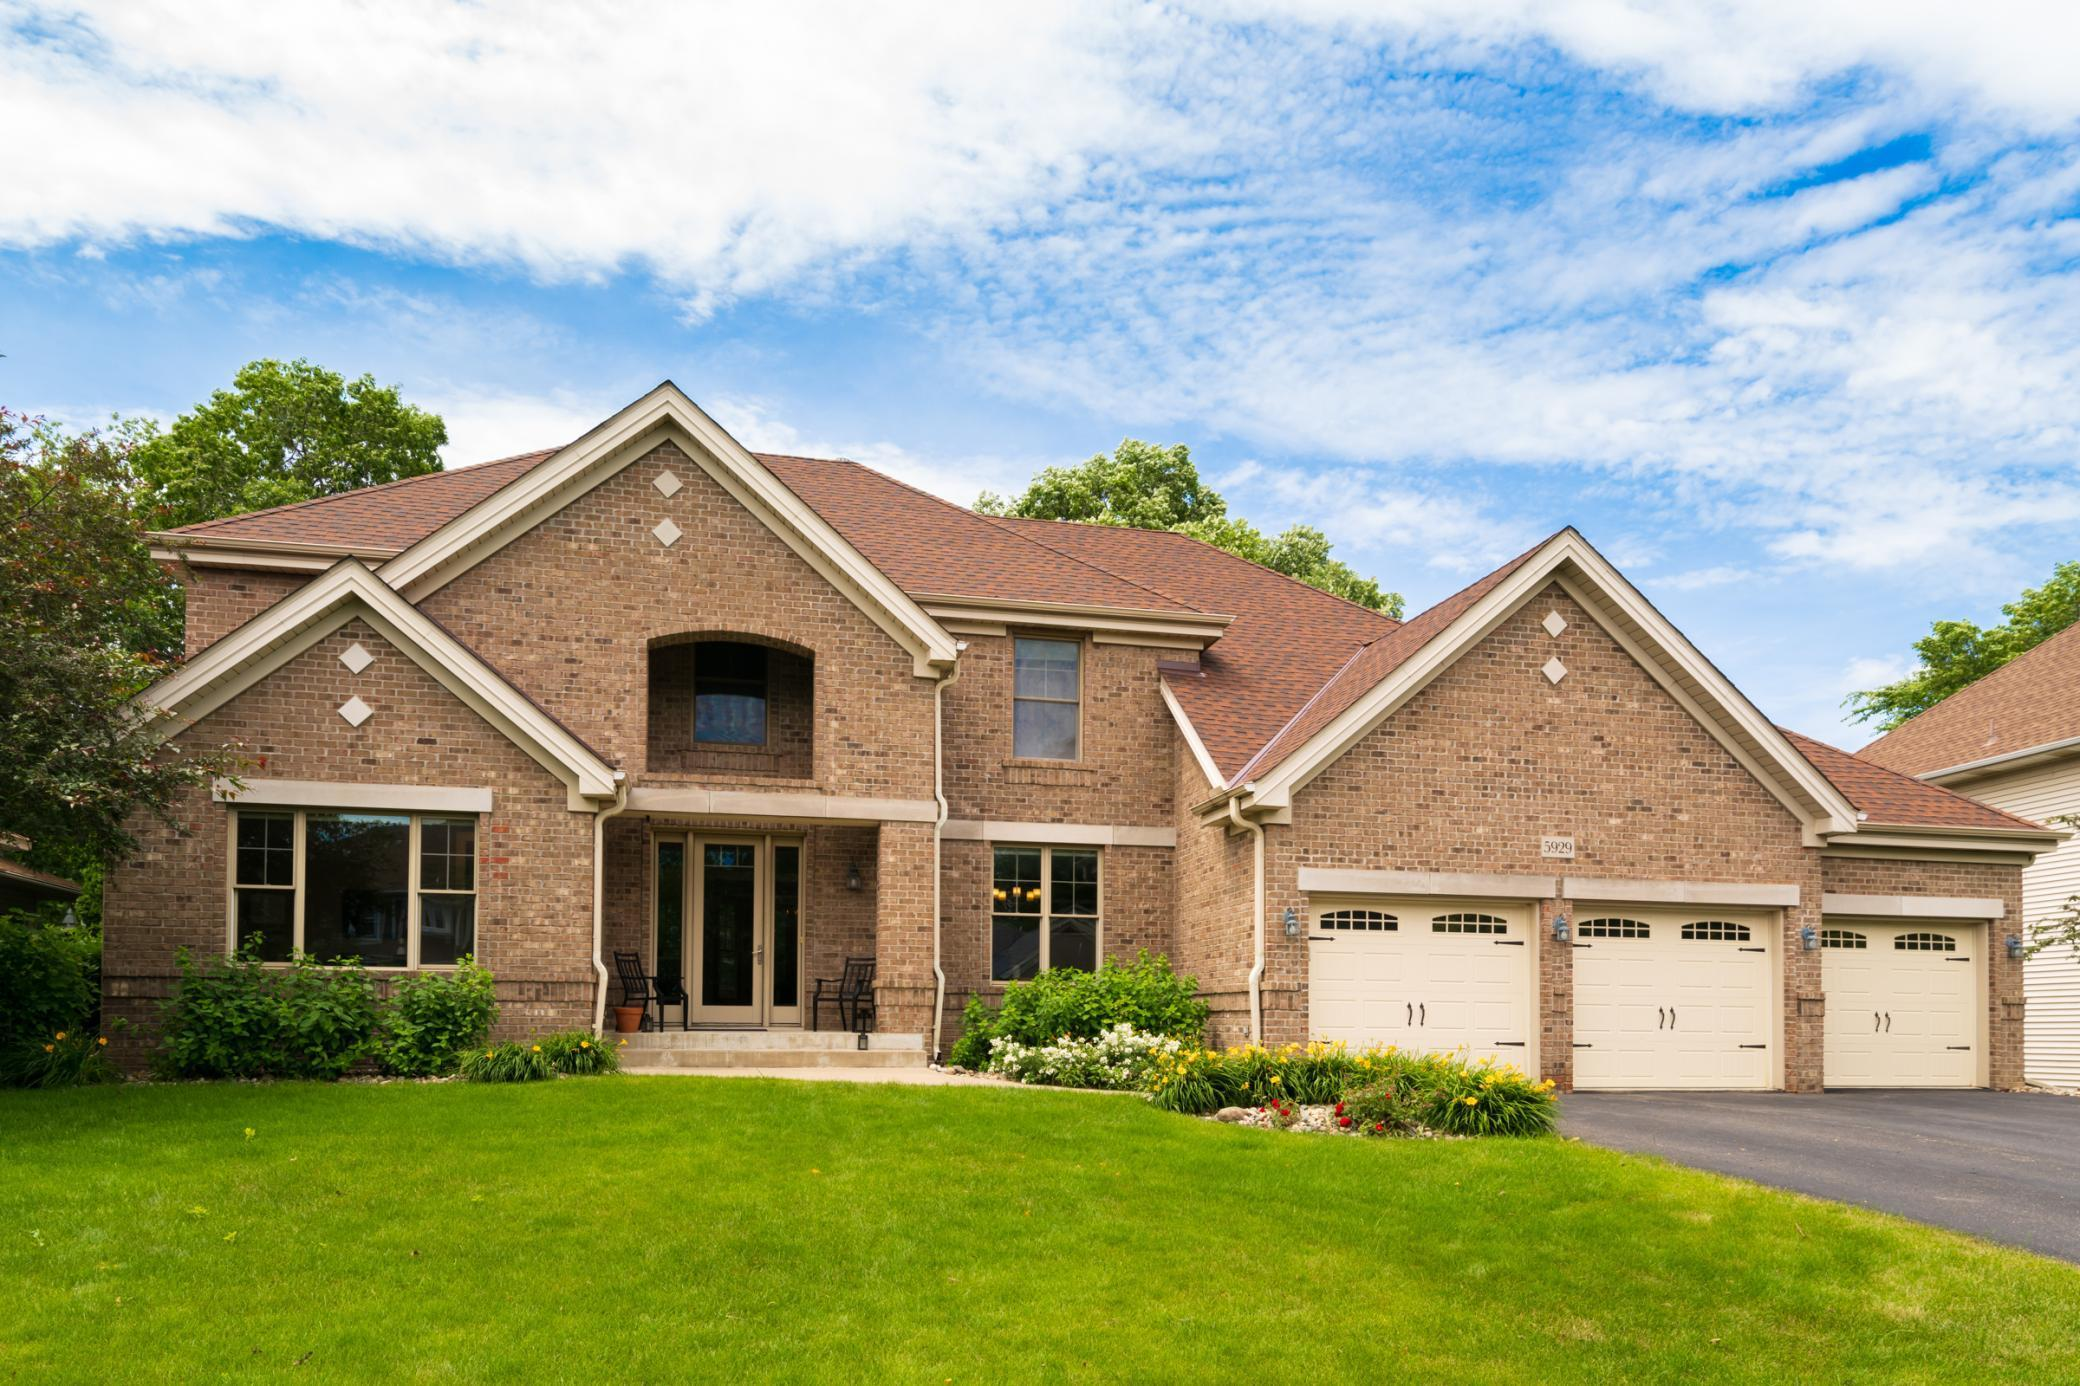 5929 Bradbury Property Photo - Inver Grove Heights, MN real estate listing